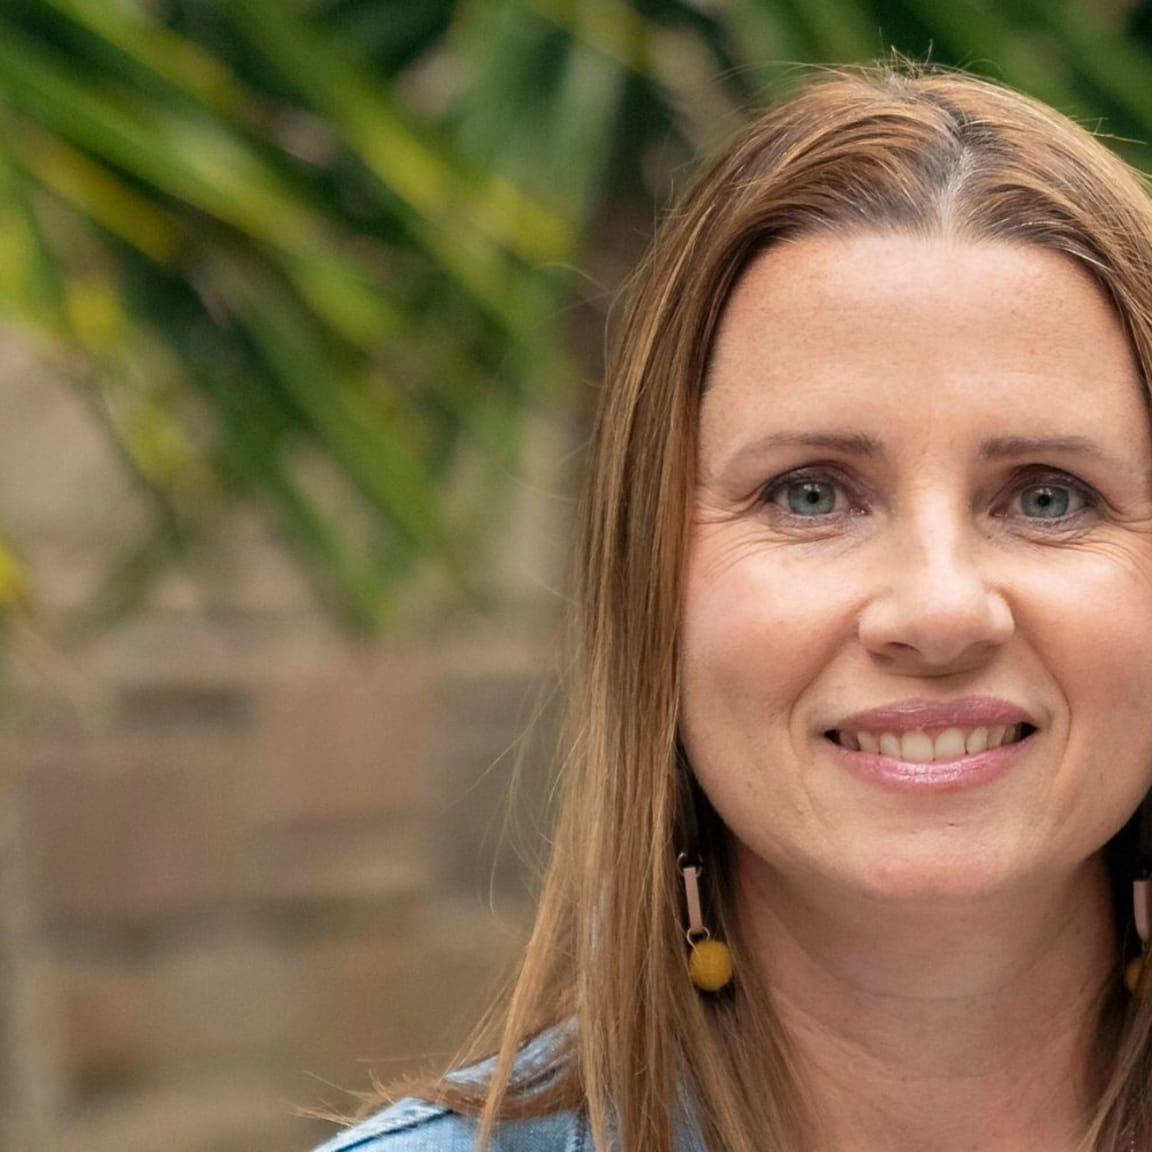 Kym Meers: The Epilepsy Centre SA: Westfield Local Heroes 2019